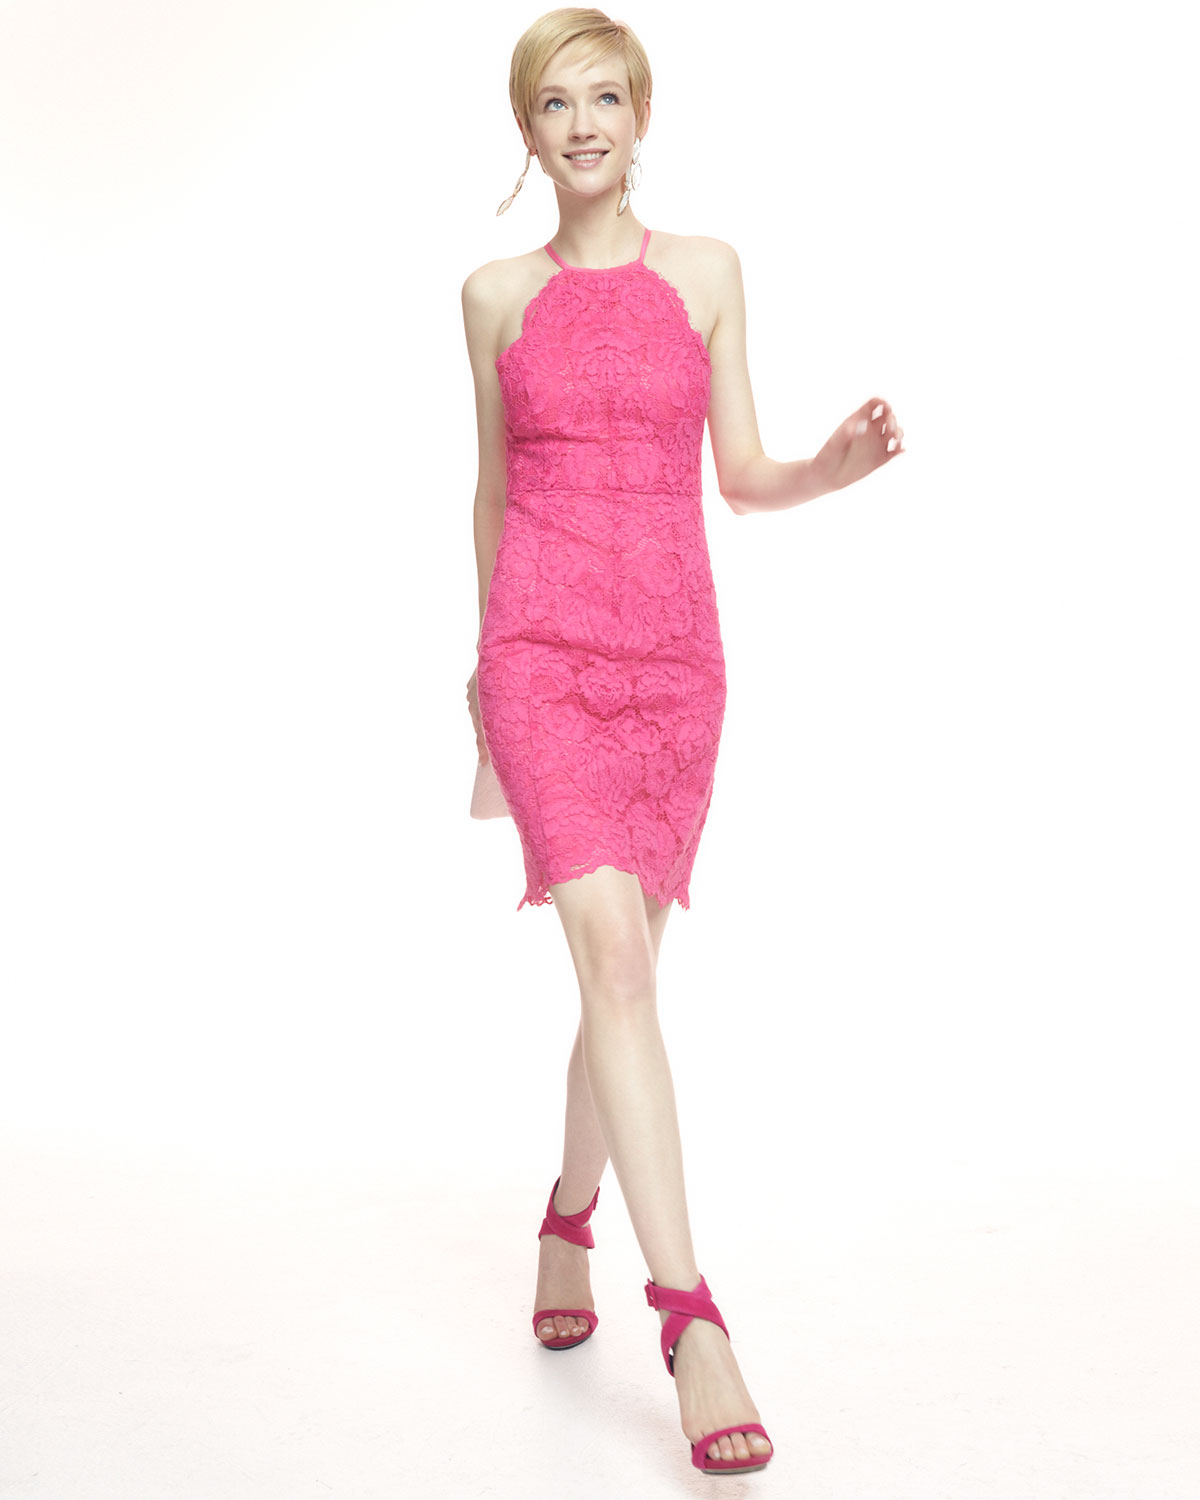 Lyst - Trina Turk Parry Lace Sleeveless Dress in Pink